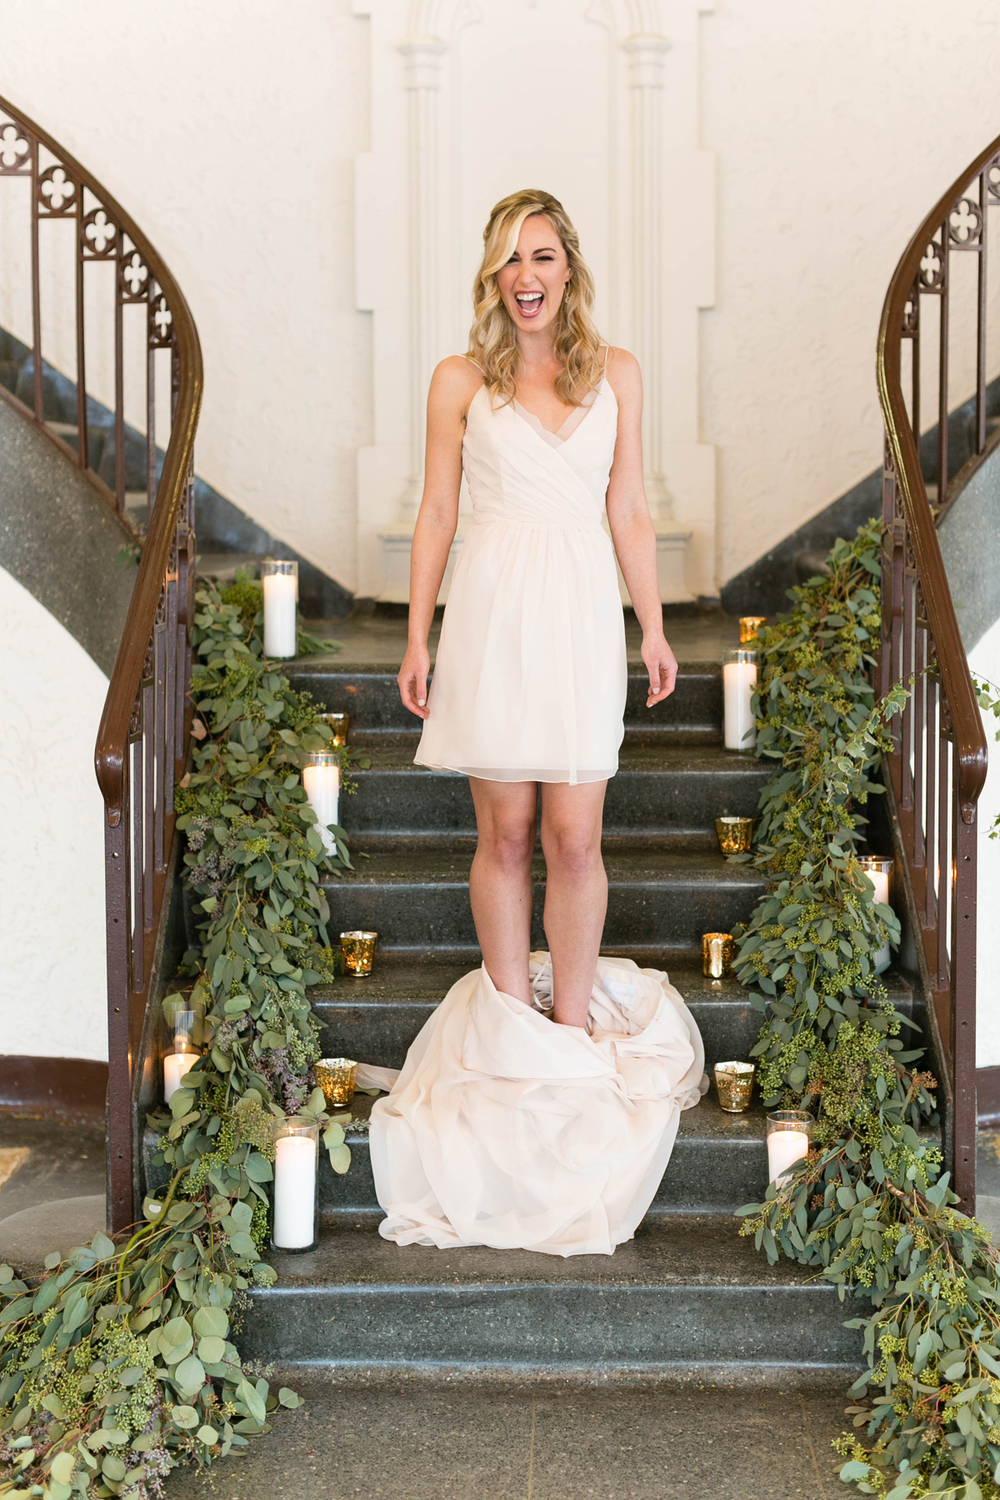 altar ego, convertible bridesmaid dress from brideside